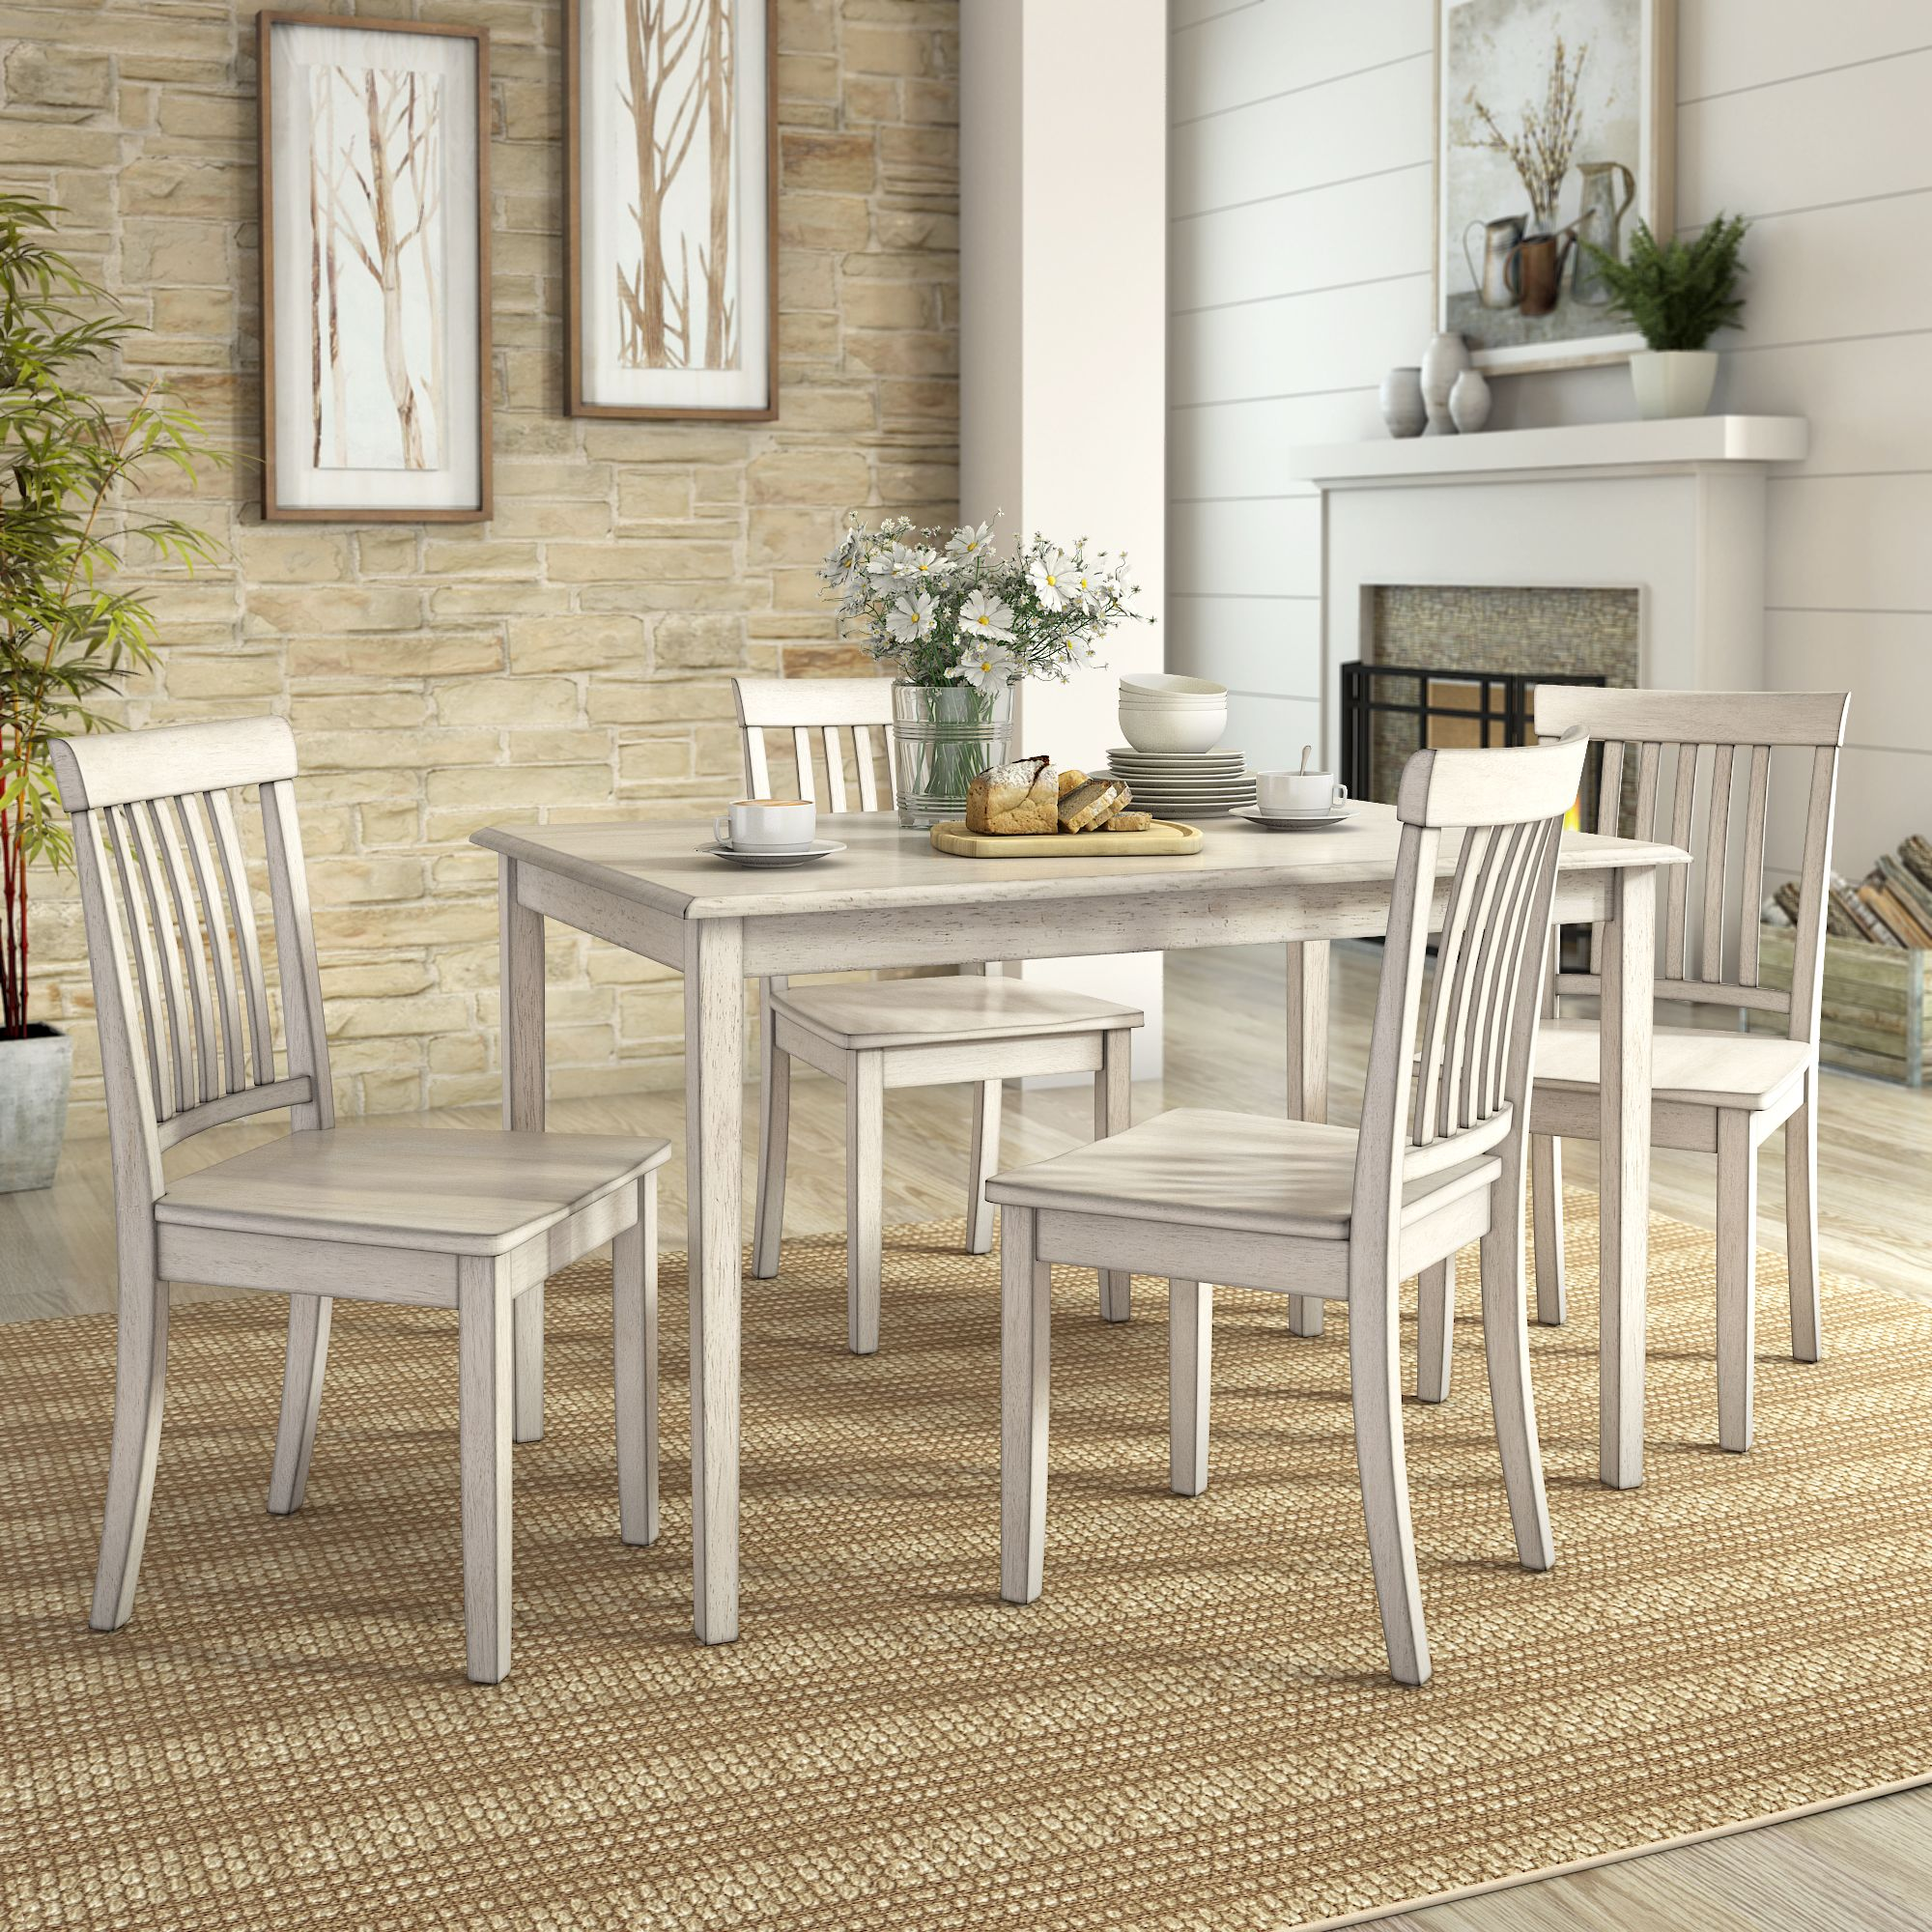 Home Dining Table 7 Piece Dining Set 5 Piece Dining Set